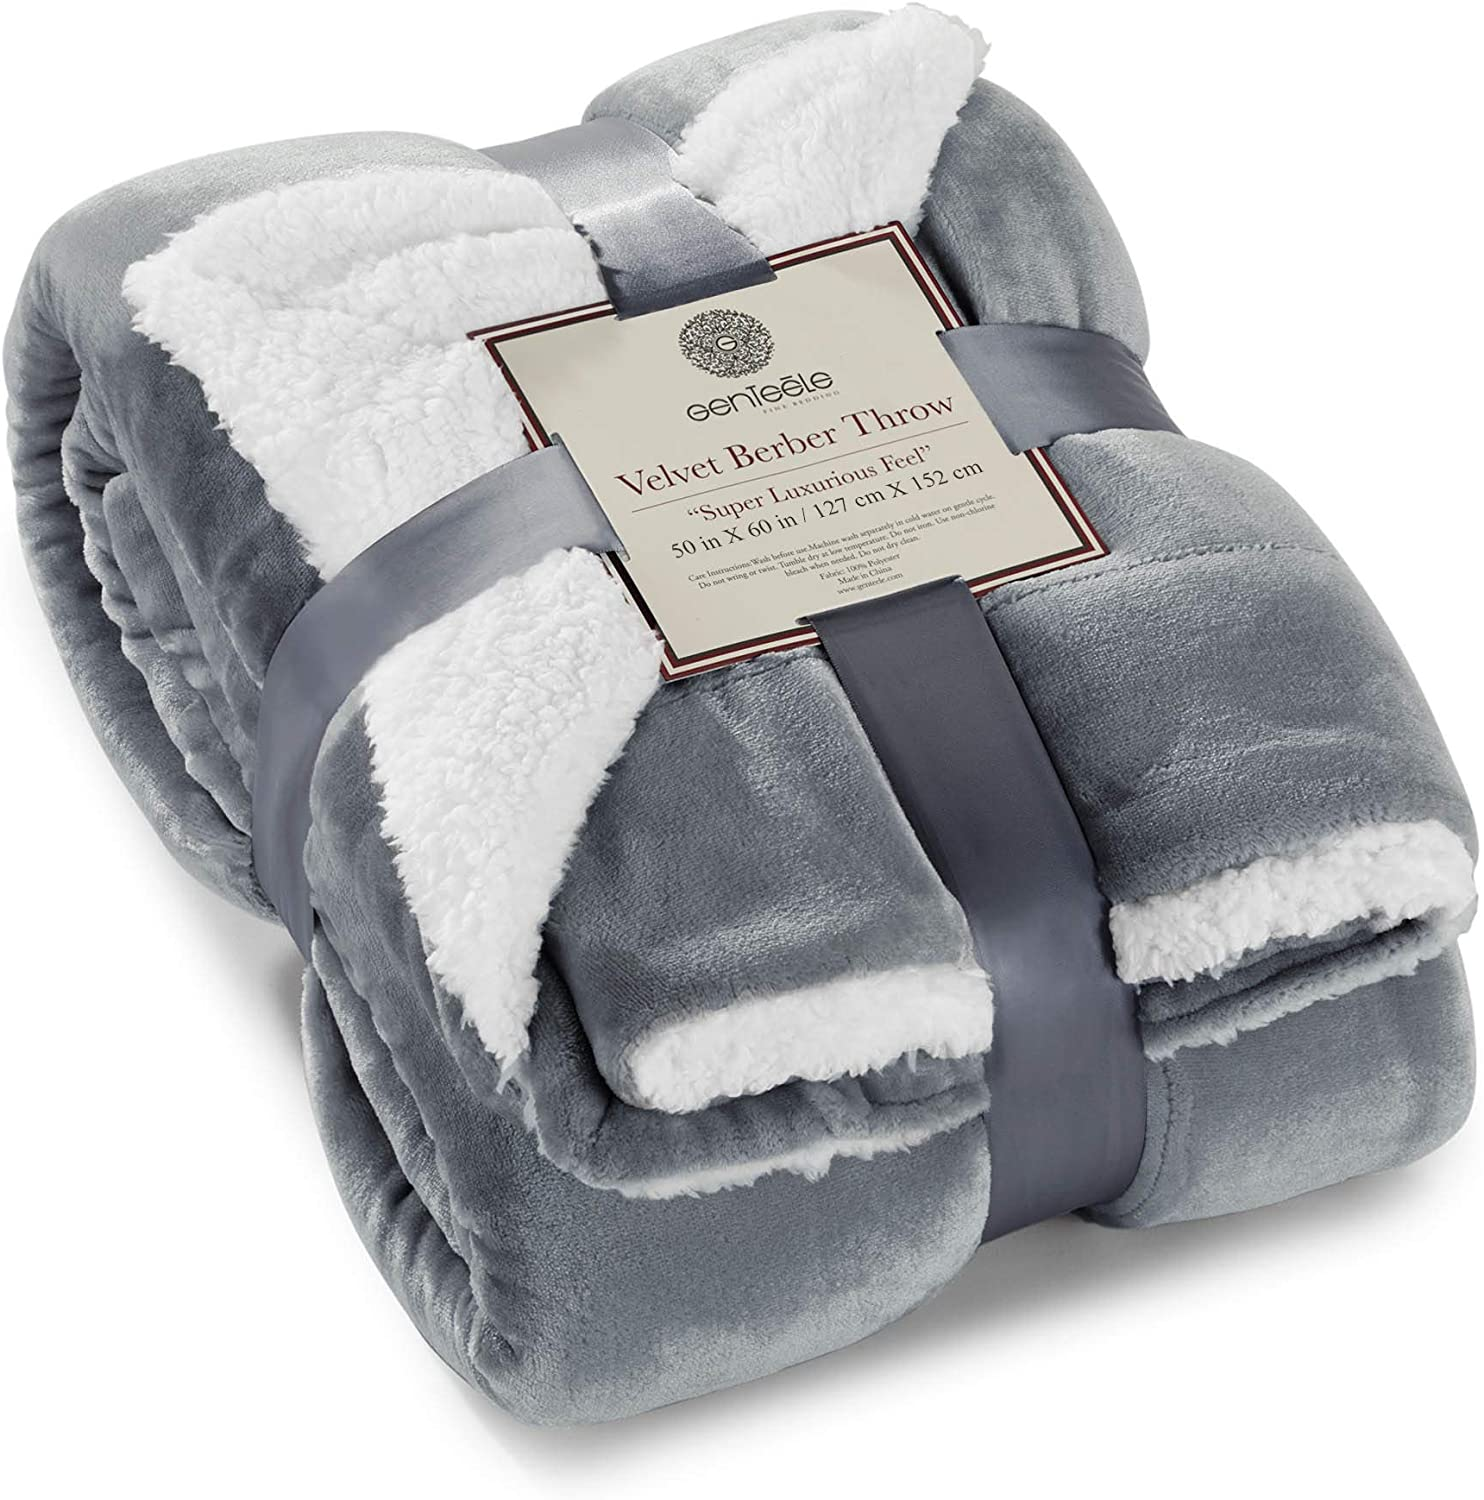 Amazon Com Genteele Sherpa Throw Blanket Super Soft Reversible Ultra Luxurious Plush Blanket 50 Inches X 60 Inches Gray White Home Kitchen